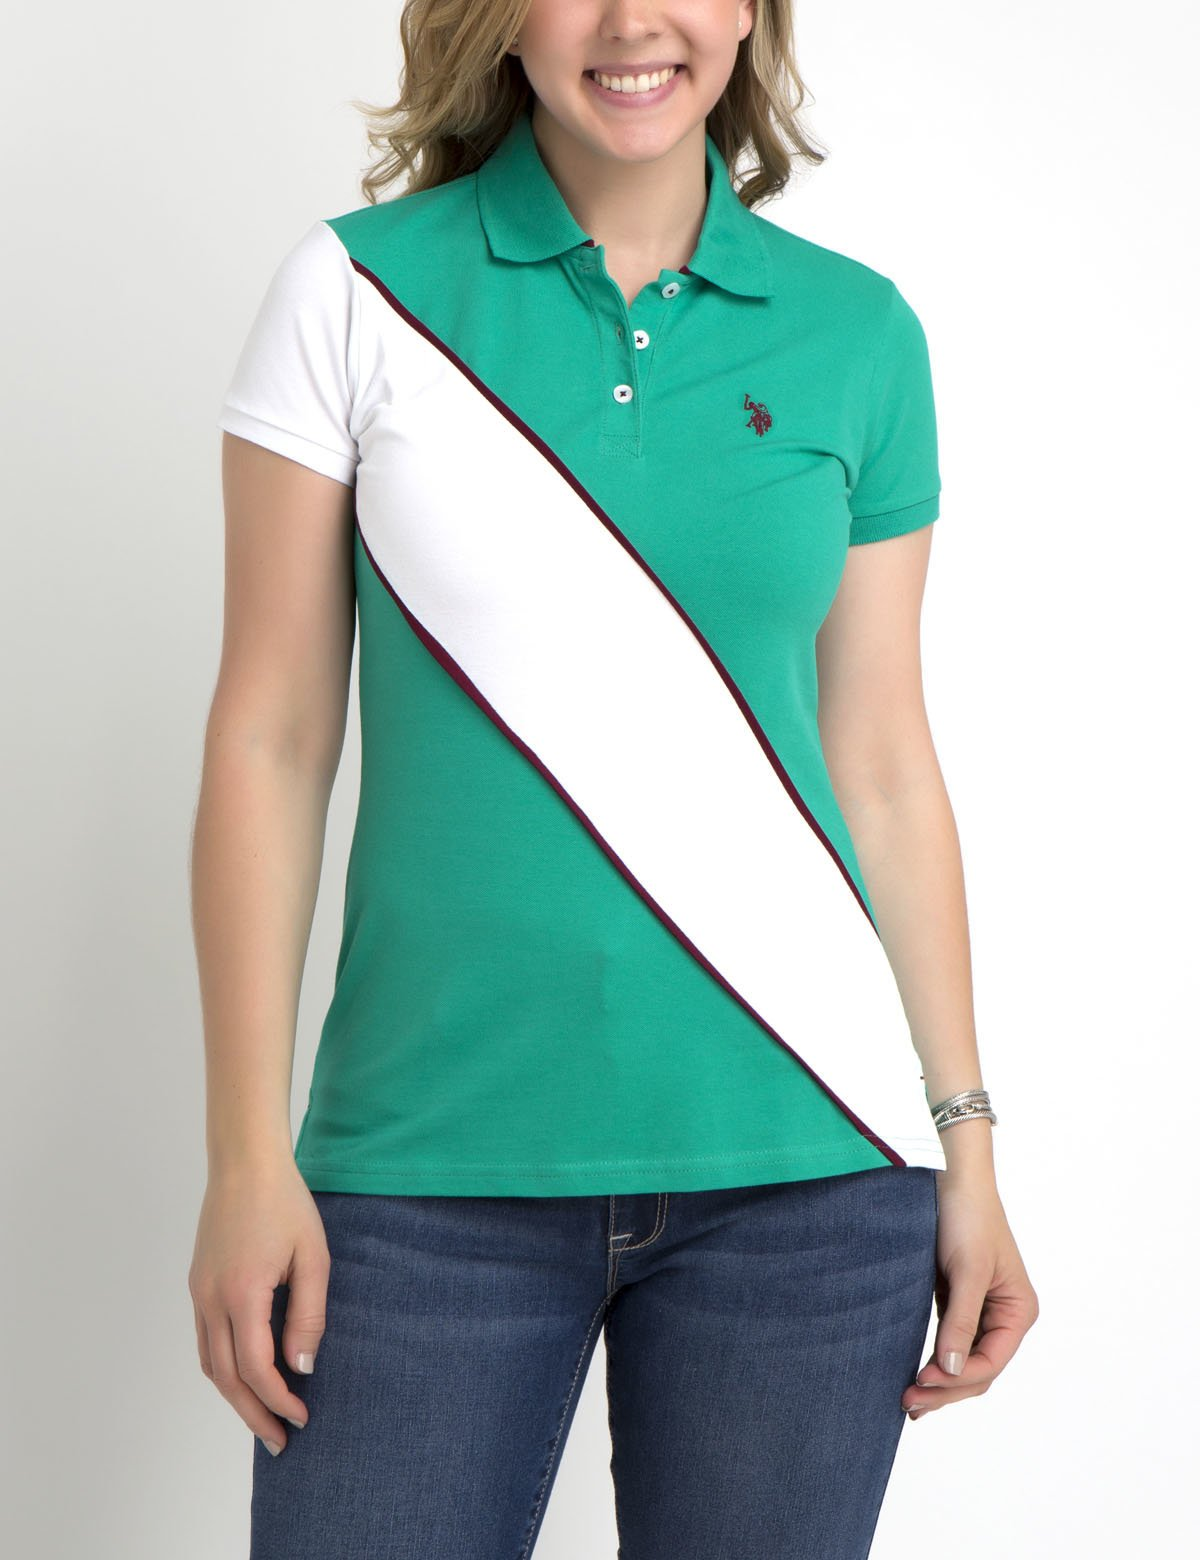 PREMIUM SLASH POLO SHIRT